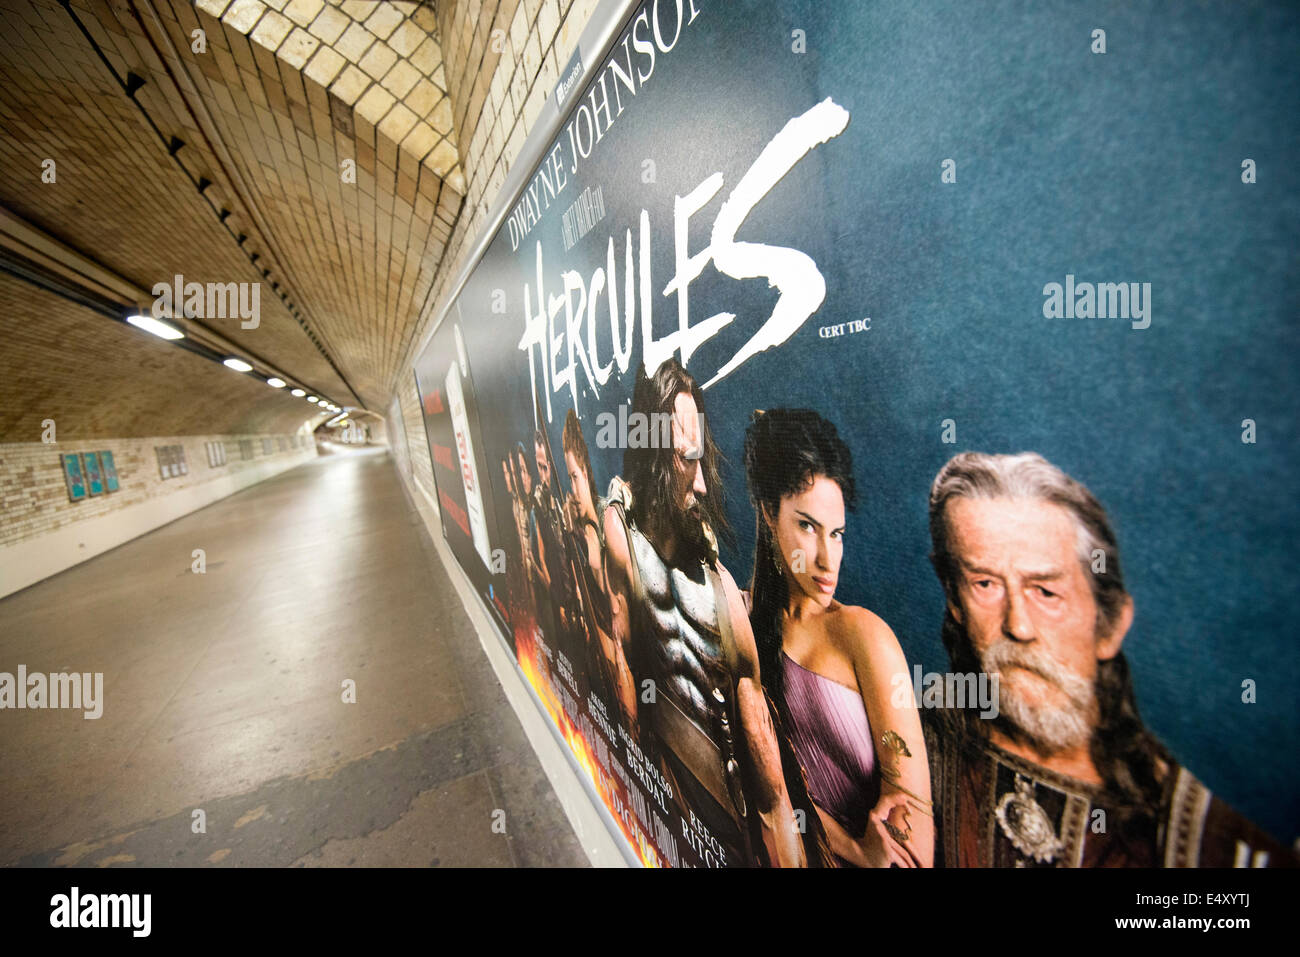 Hercules Poster on a wall in the underground in London England UK - Stock Image